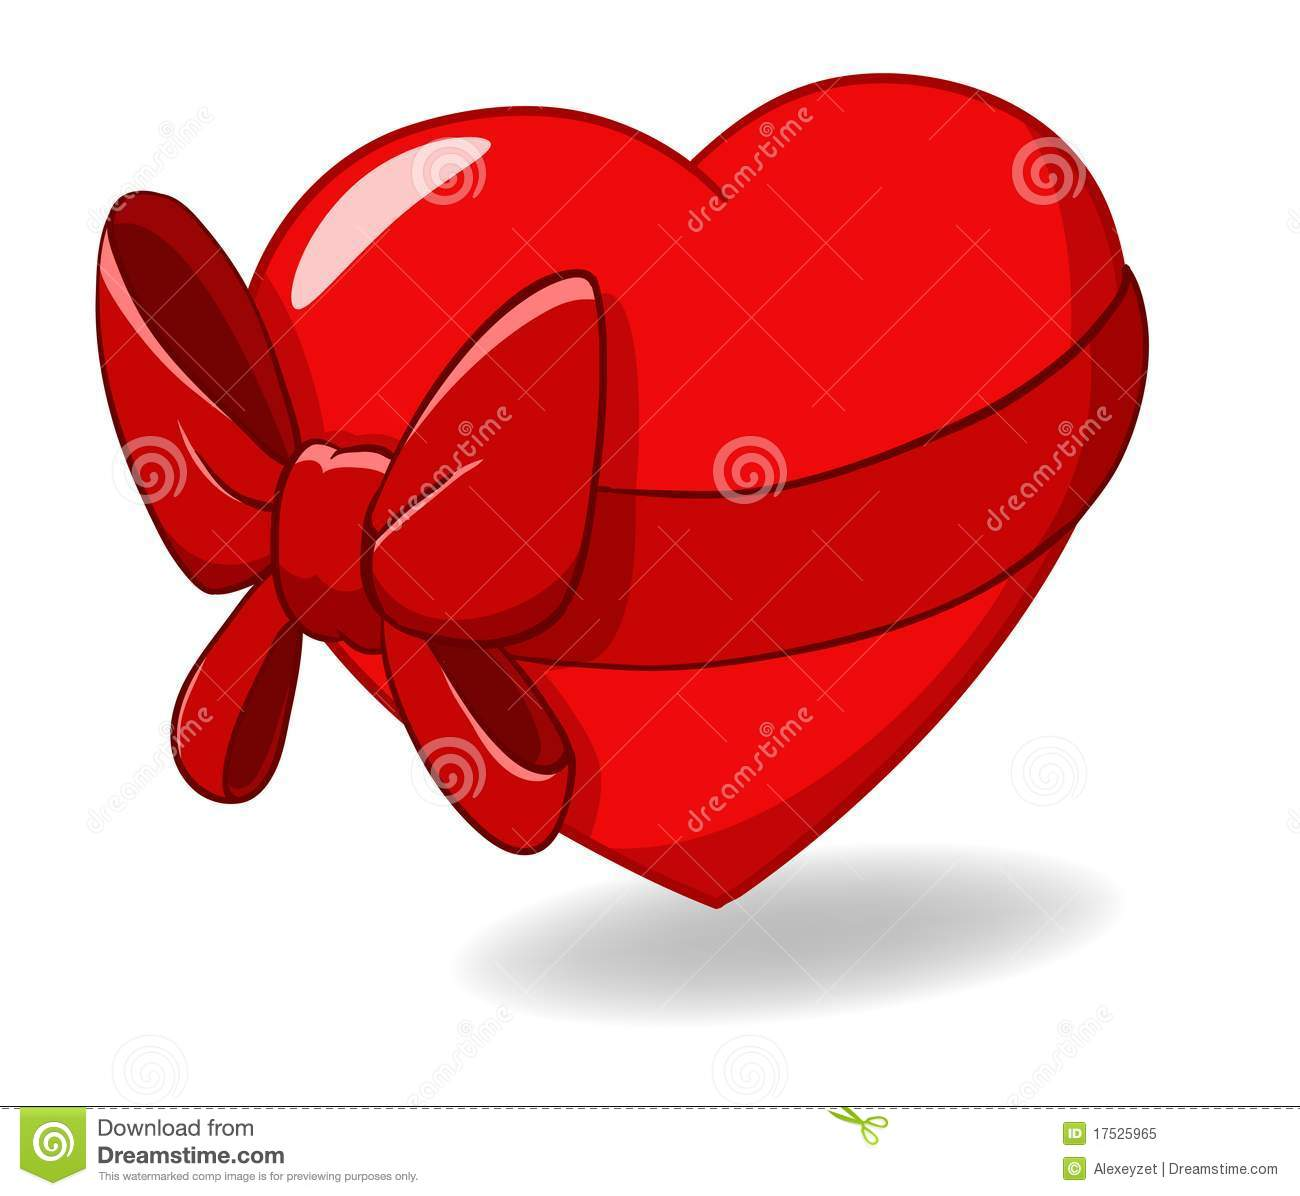 It is an image of Clever Hearts With Bows